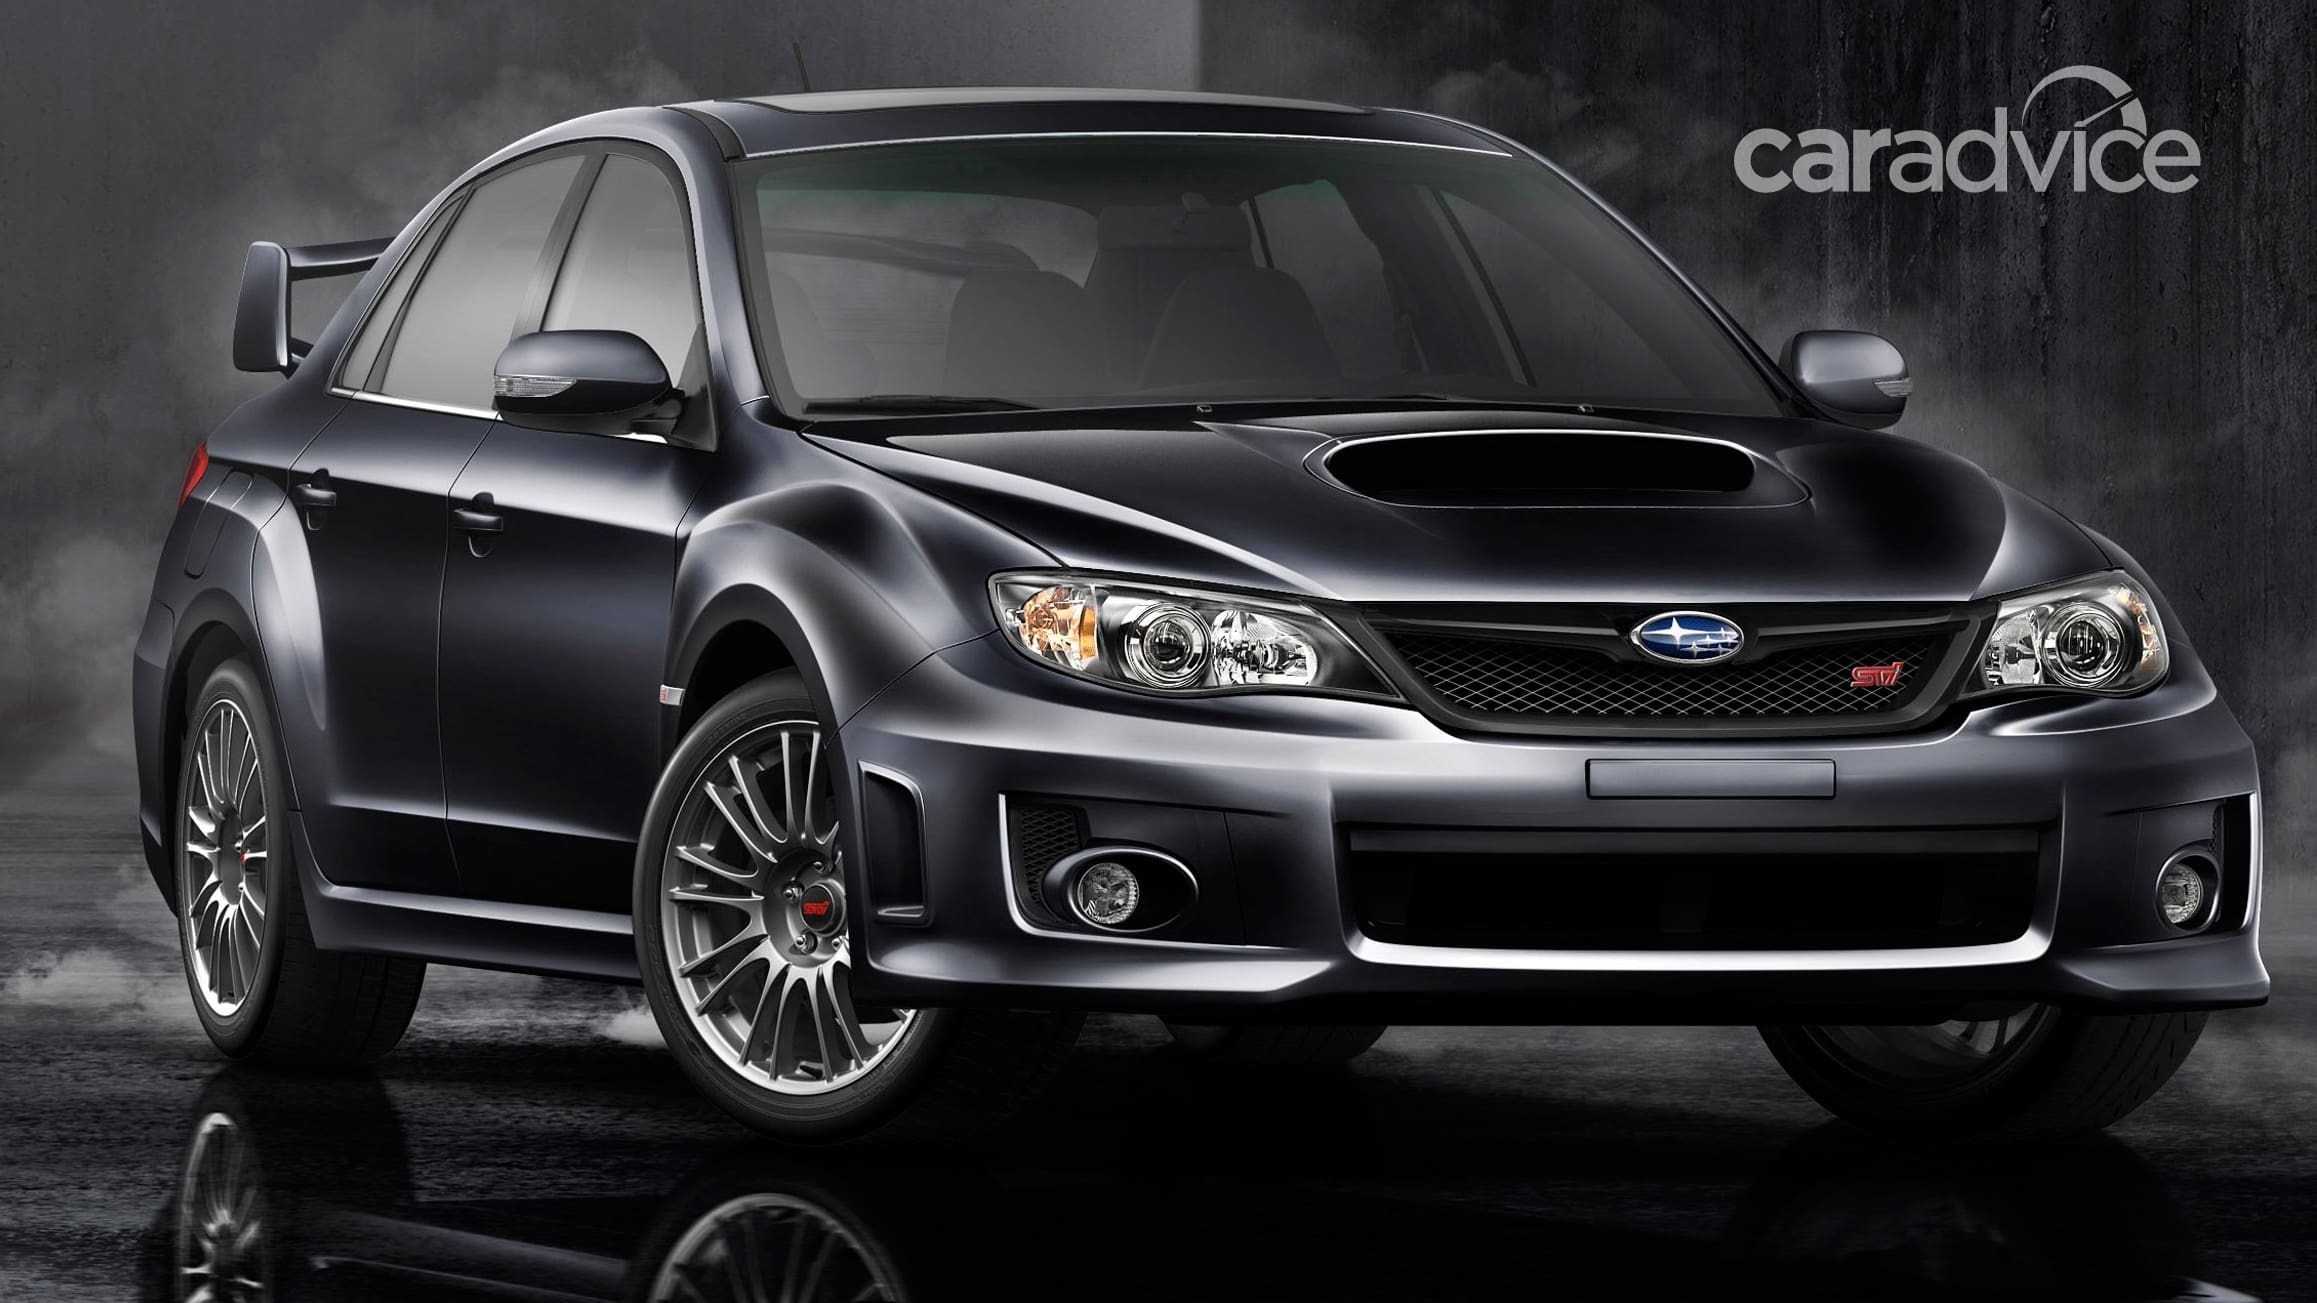 2011 Subaru Impreza WRX STI announced - photos | CarAdvice